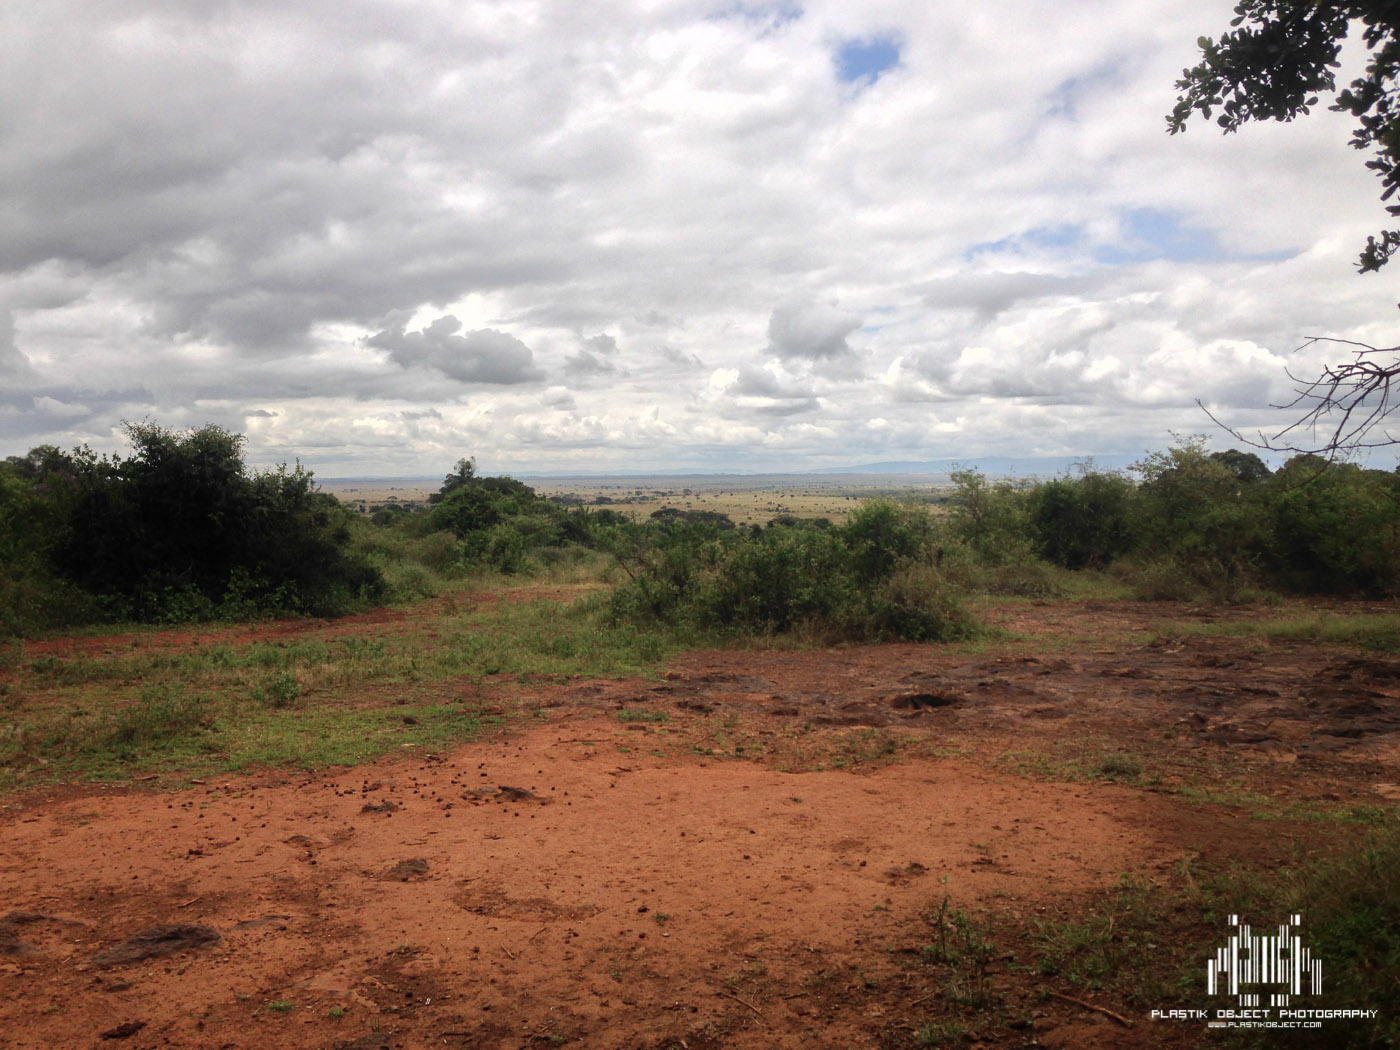 Turning around 180 degrees from the elephants was the view into the Nairobi National Park.